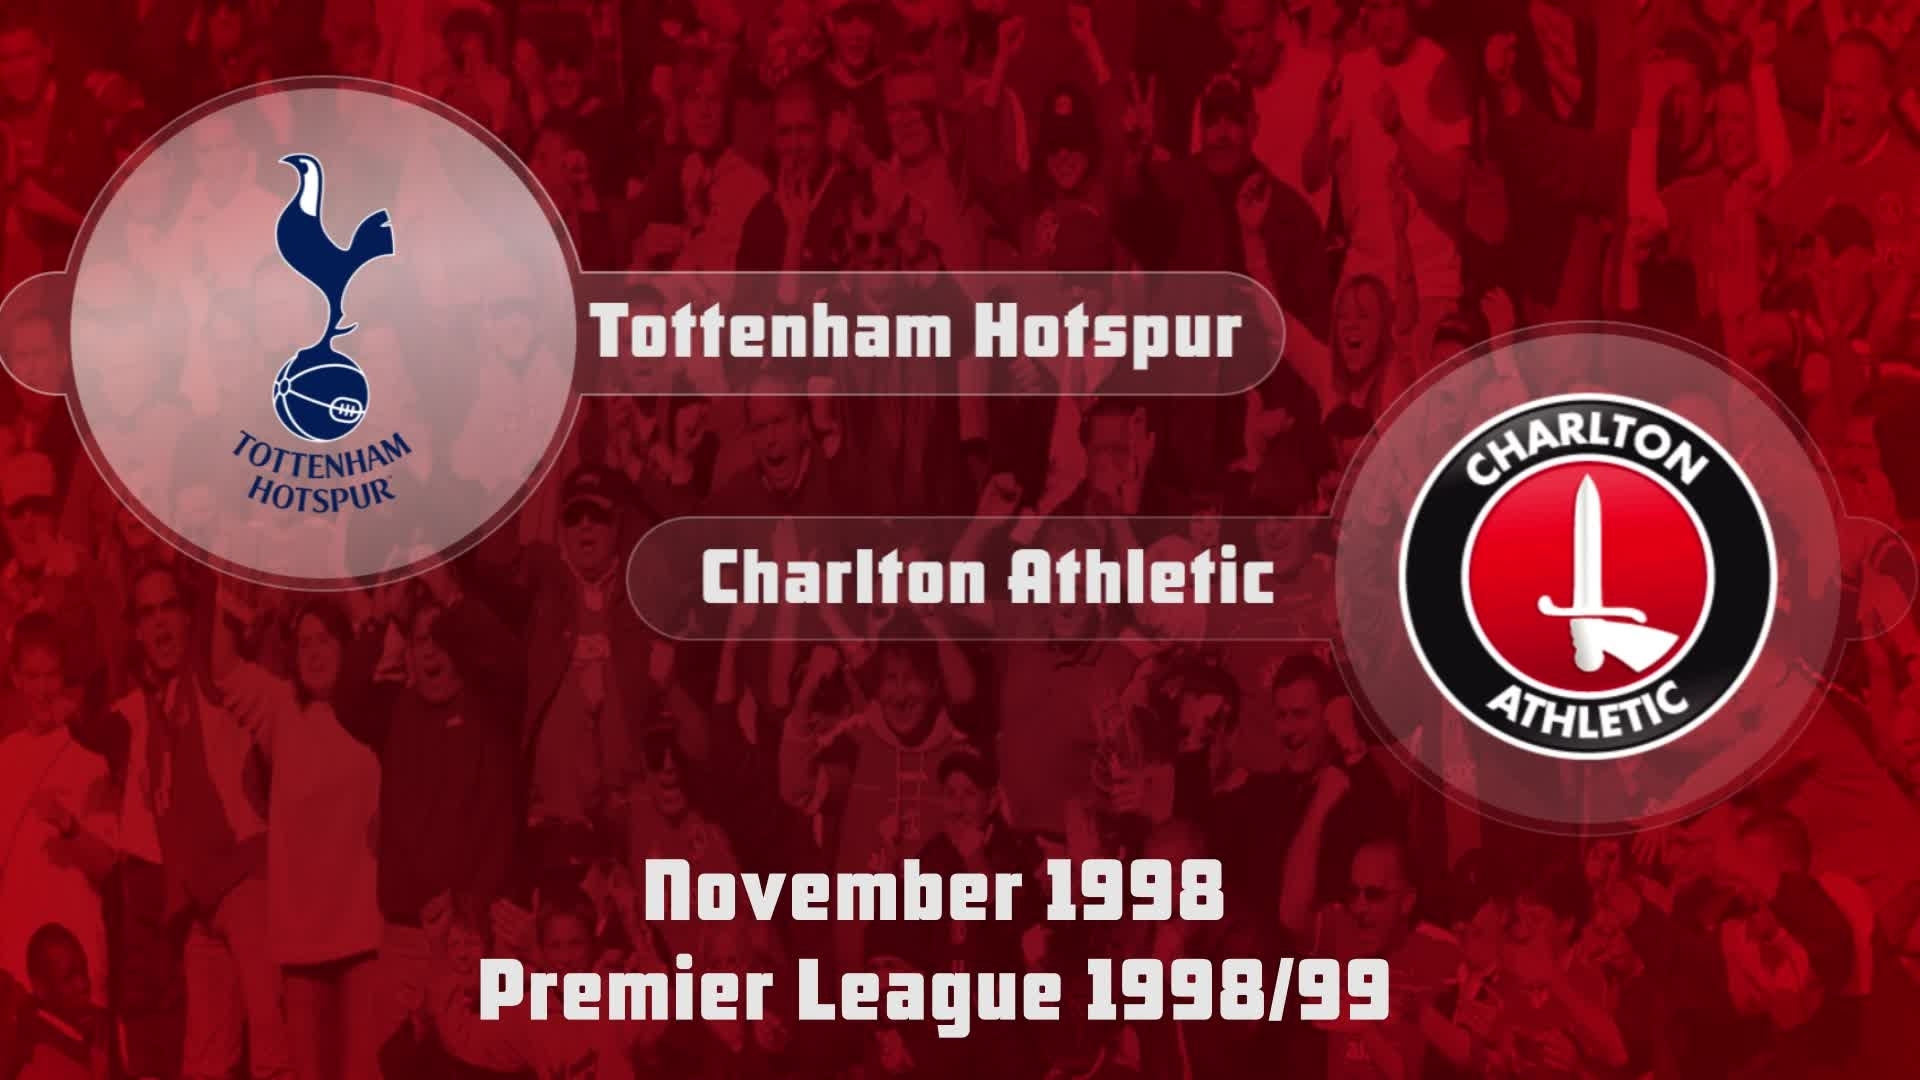 14 HIGHLIGHTS | Tottenham 2 Charlton 2 (Nov 1998)